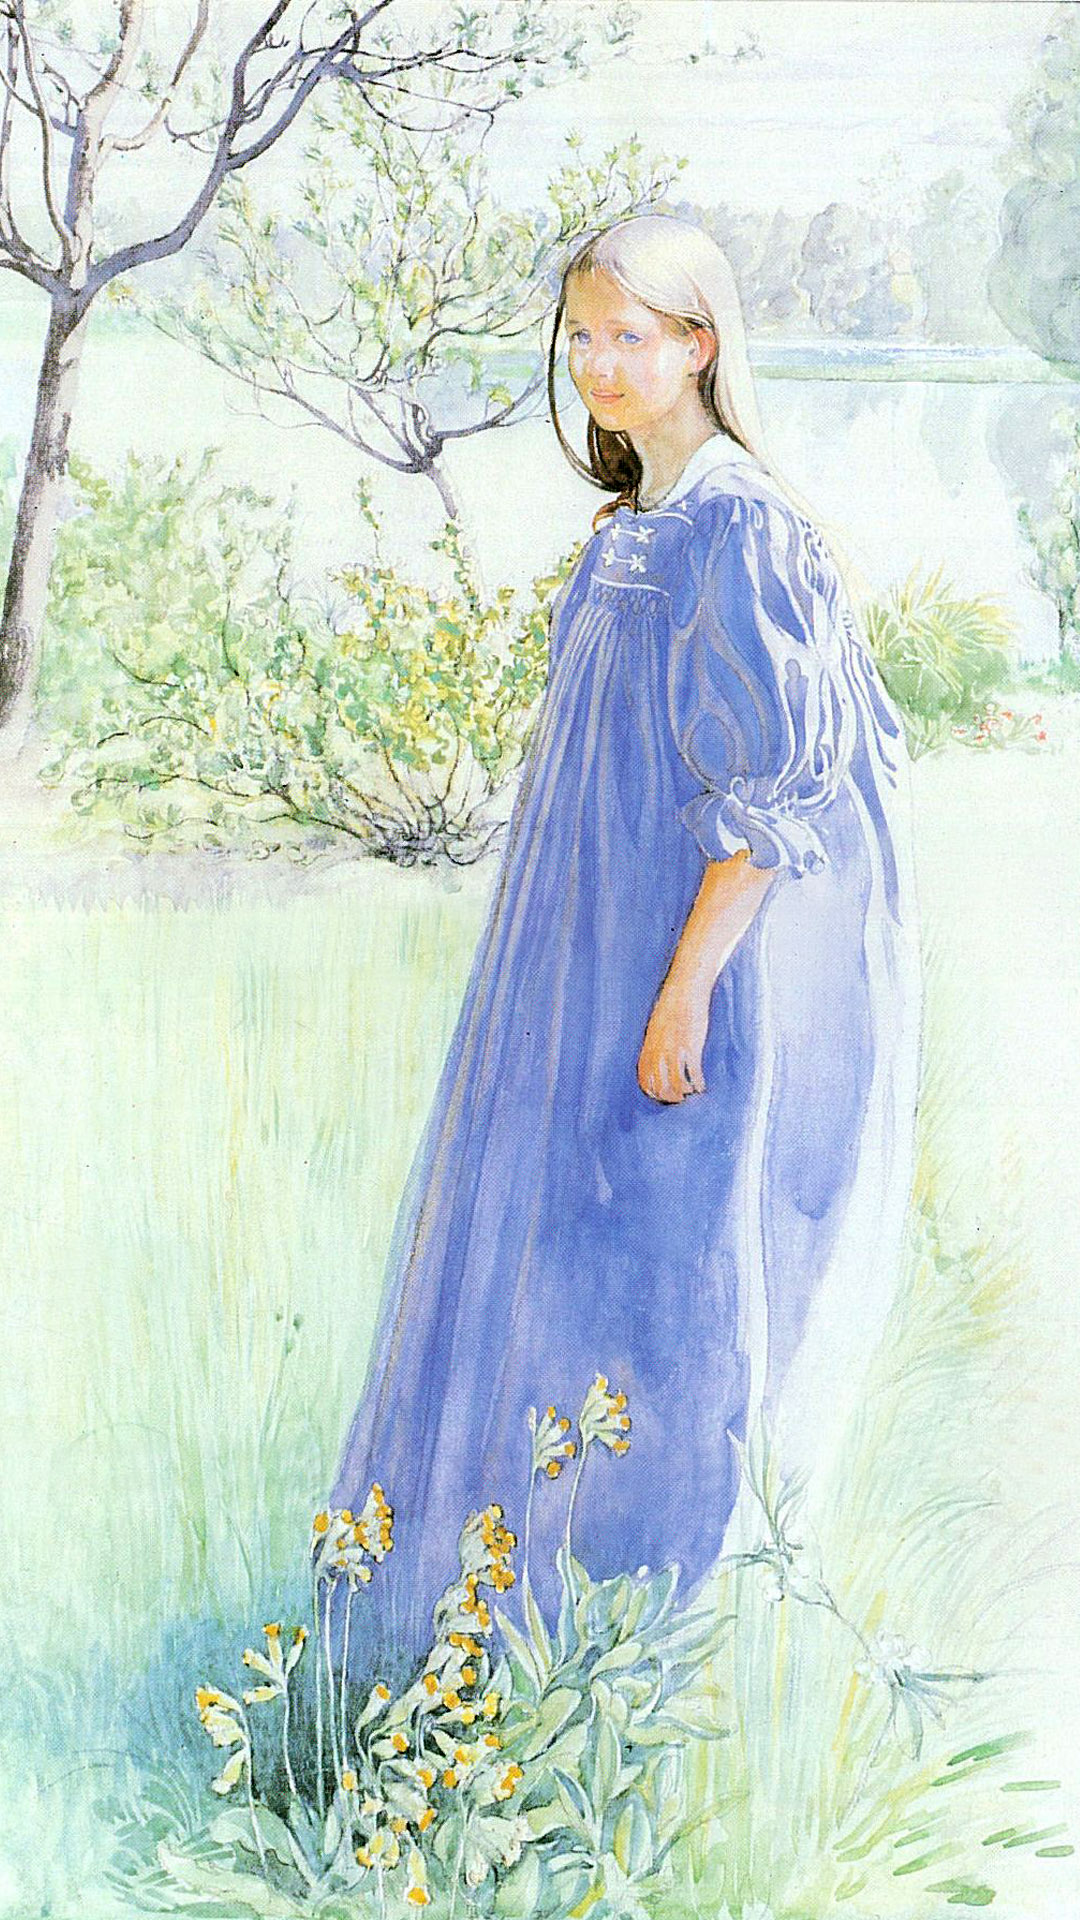 Carl Larsson - Sun and flowers 1080x1920